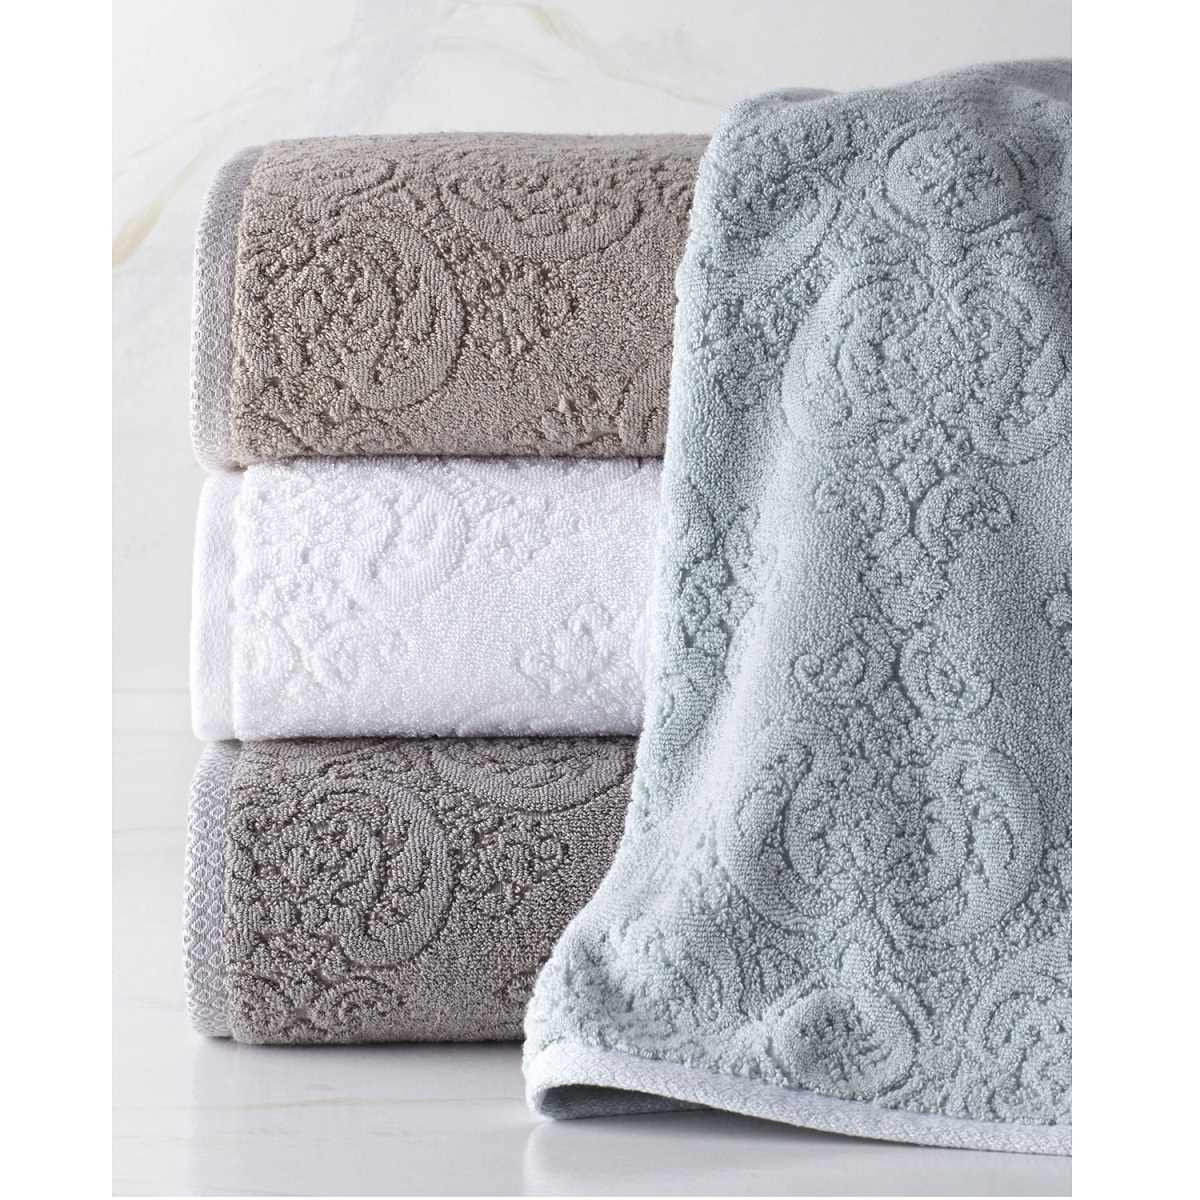 Полотенца Полотенце 76х137 Kassatex Bedminster Damask tile grey elitnoe-polotentse-mahrovoe-bedminster-damask-tile-grey-ot-kassatex-portugaliya.jpg